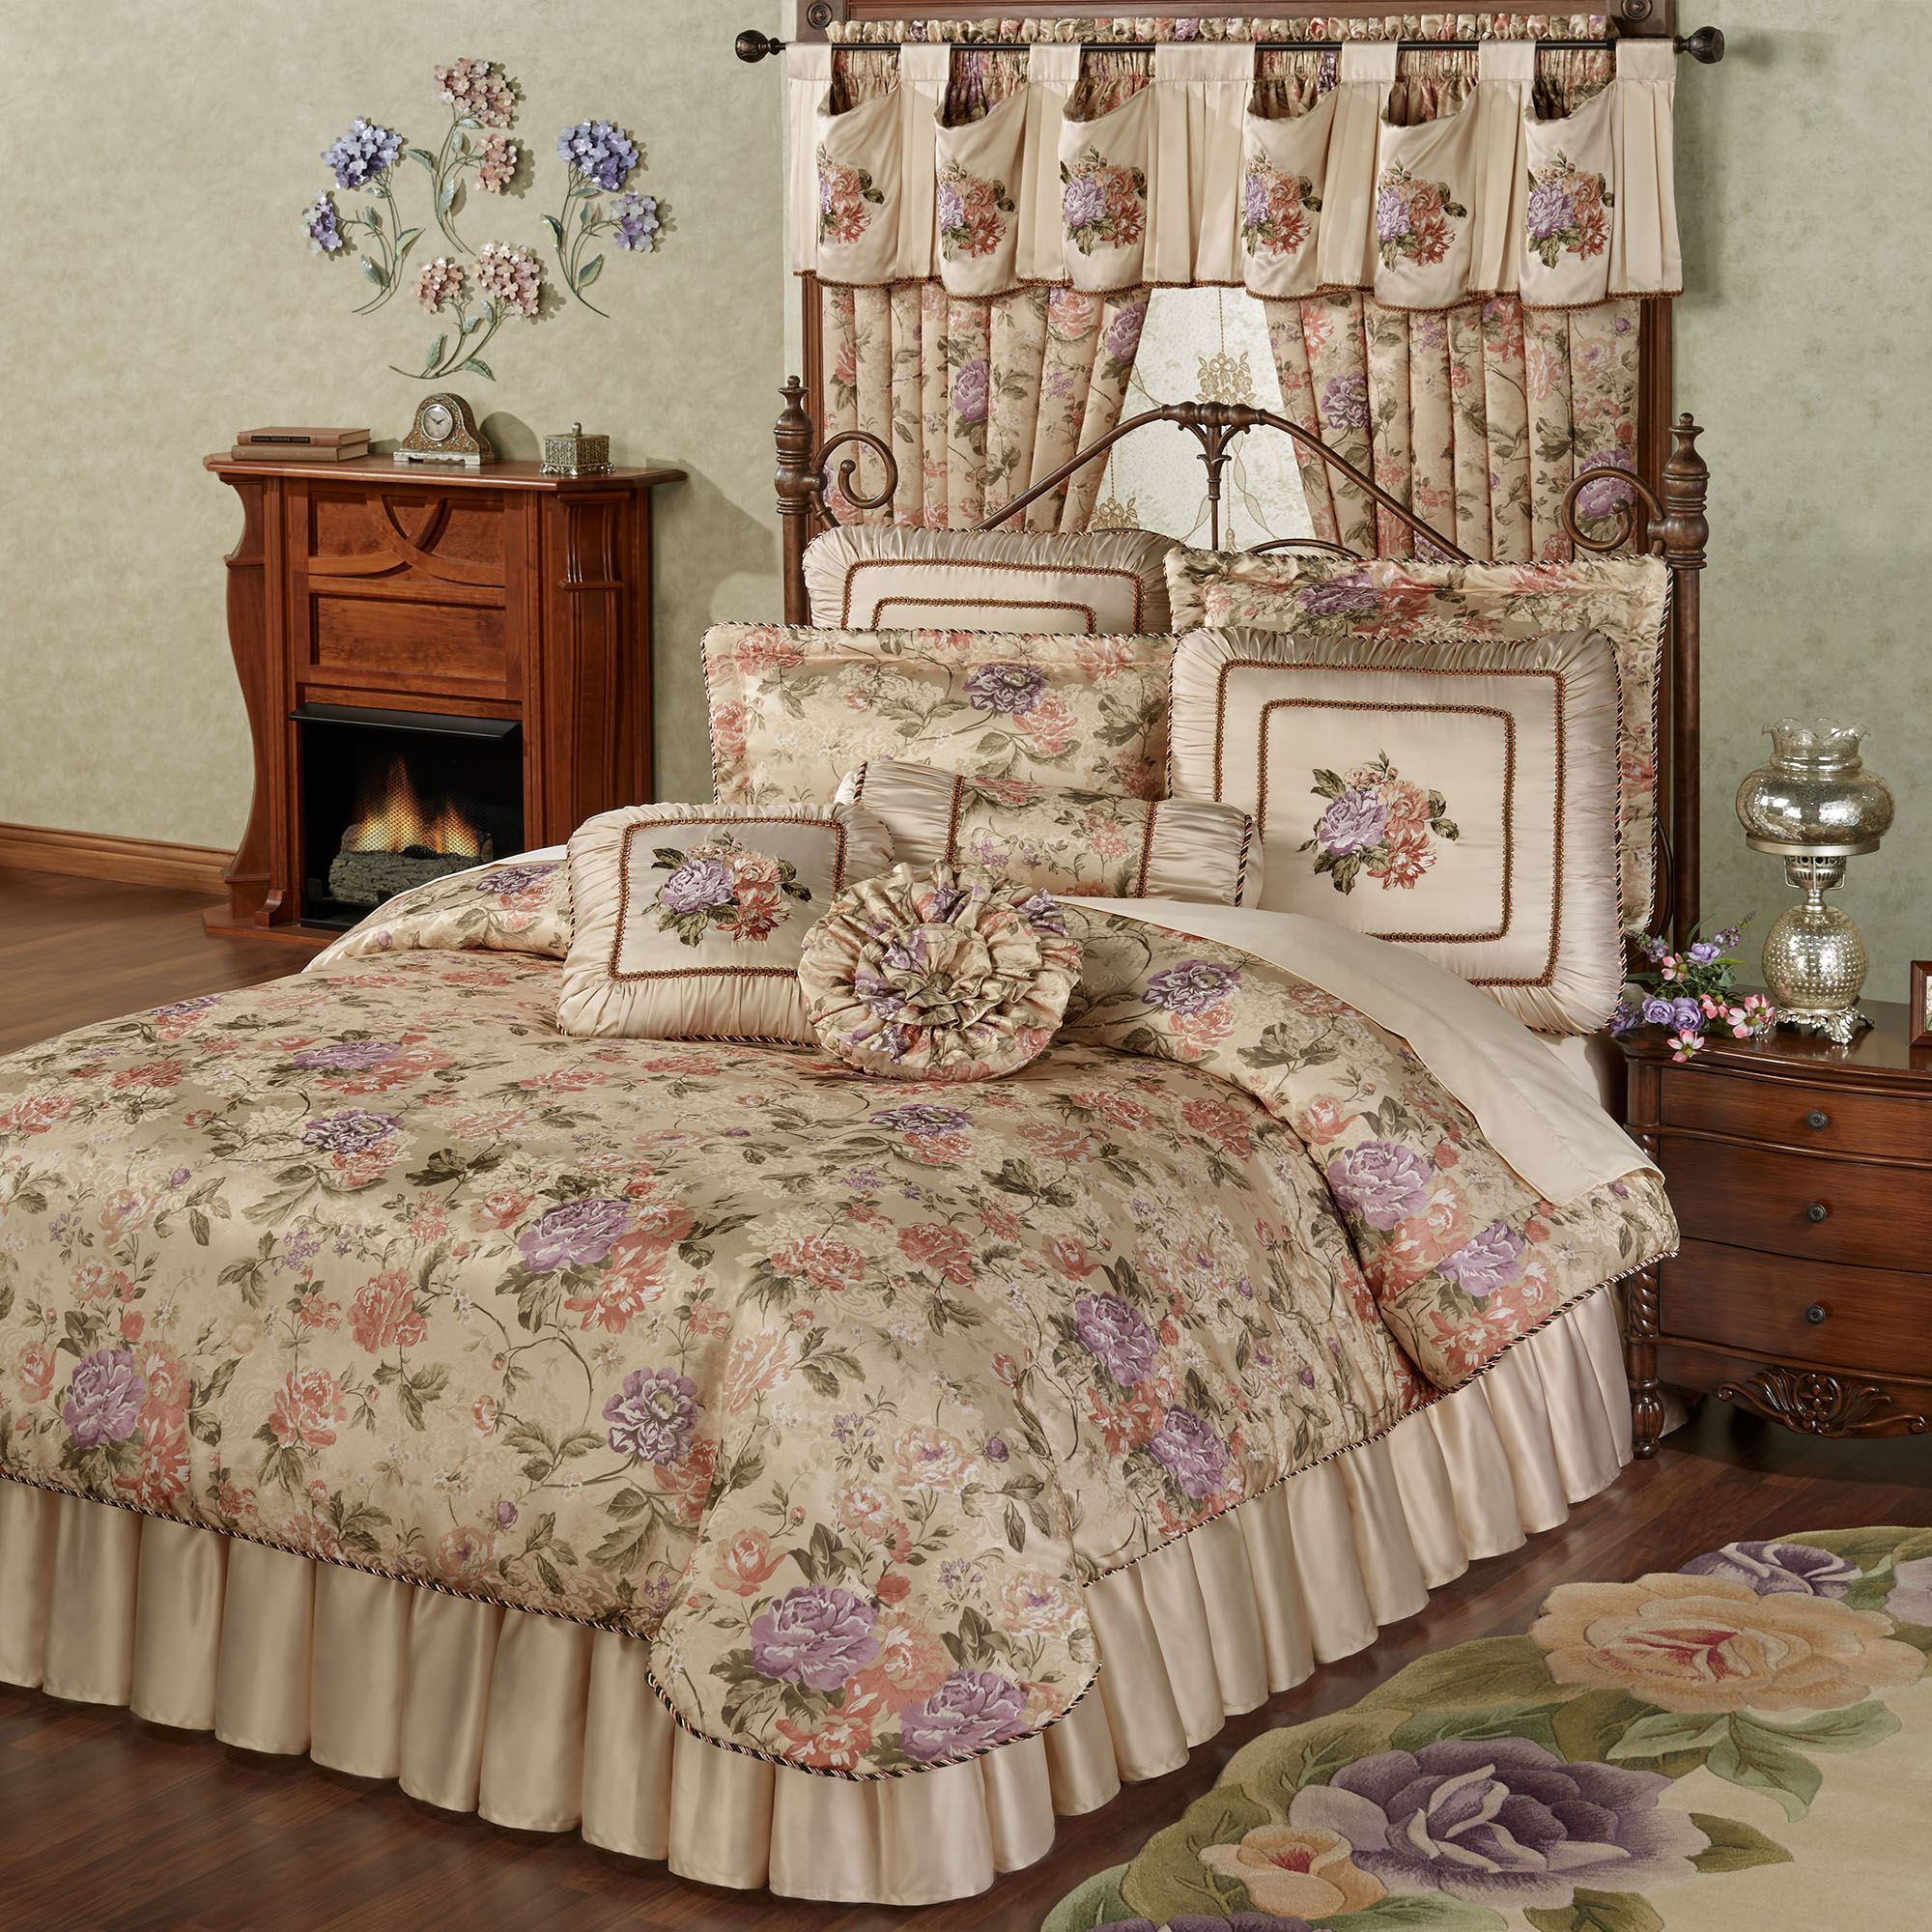 sets vintage comforters image lostcoastshuttle bedding comforter floral set flower of decorative